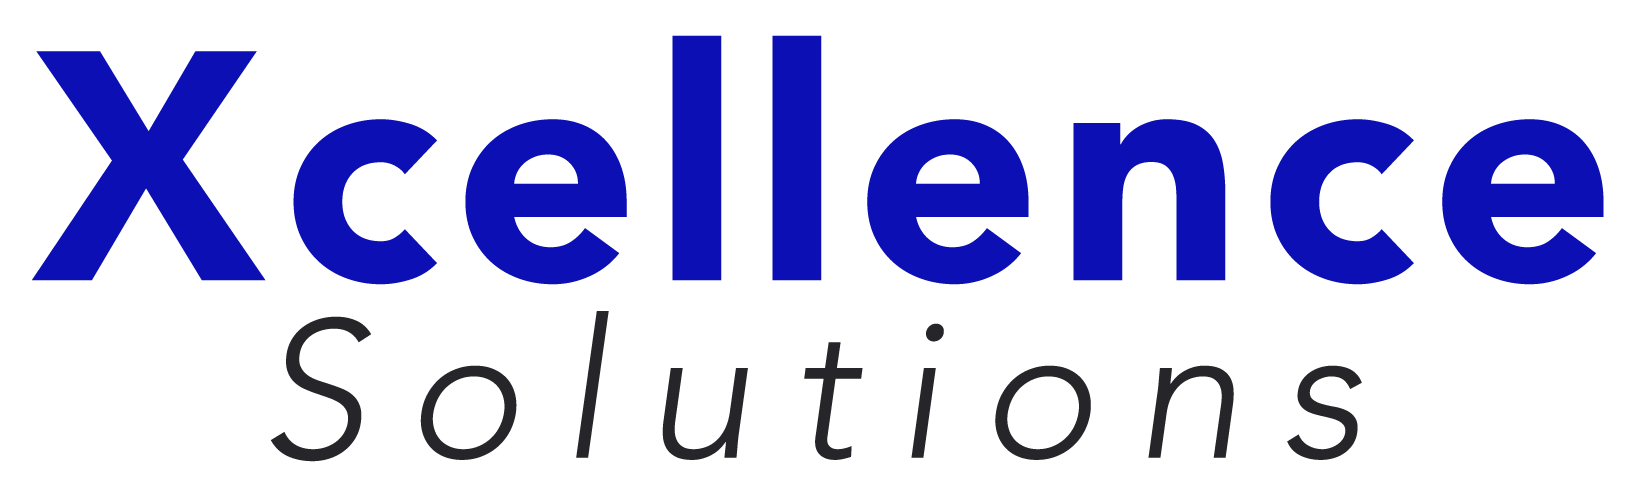 Xcellence Solutions logo